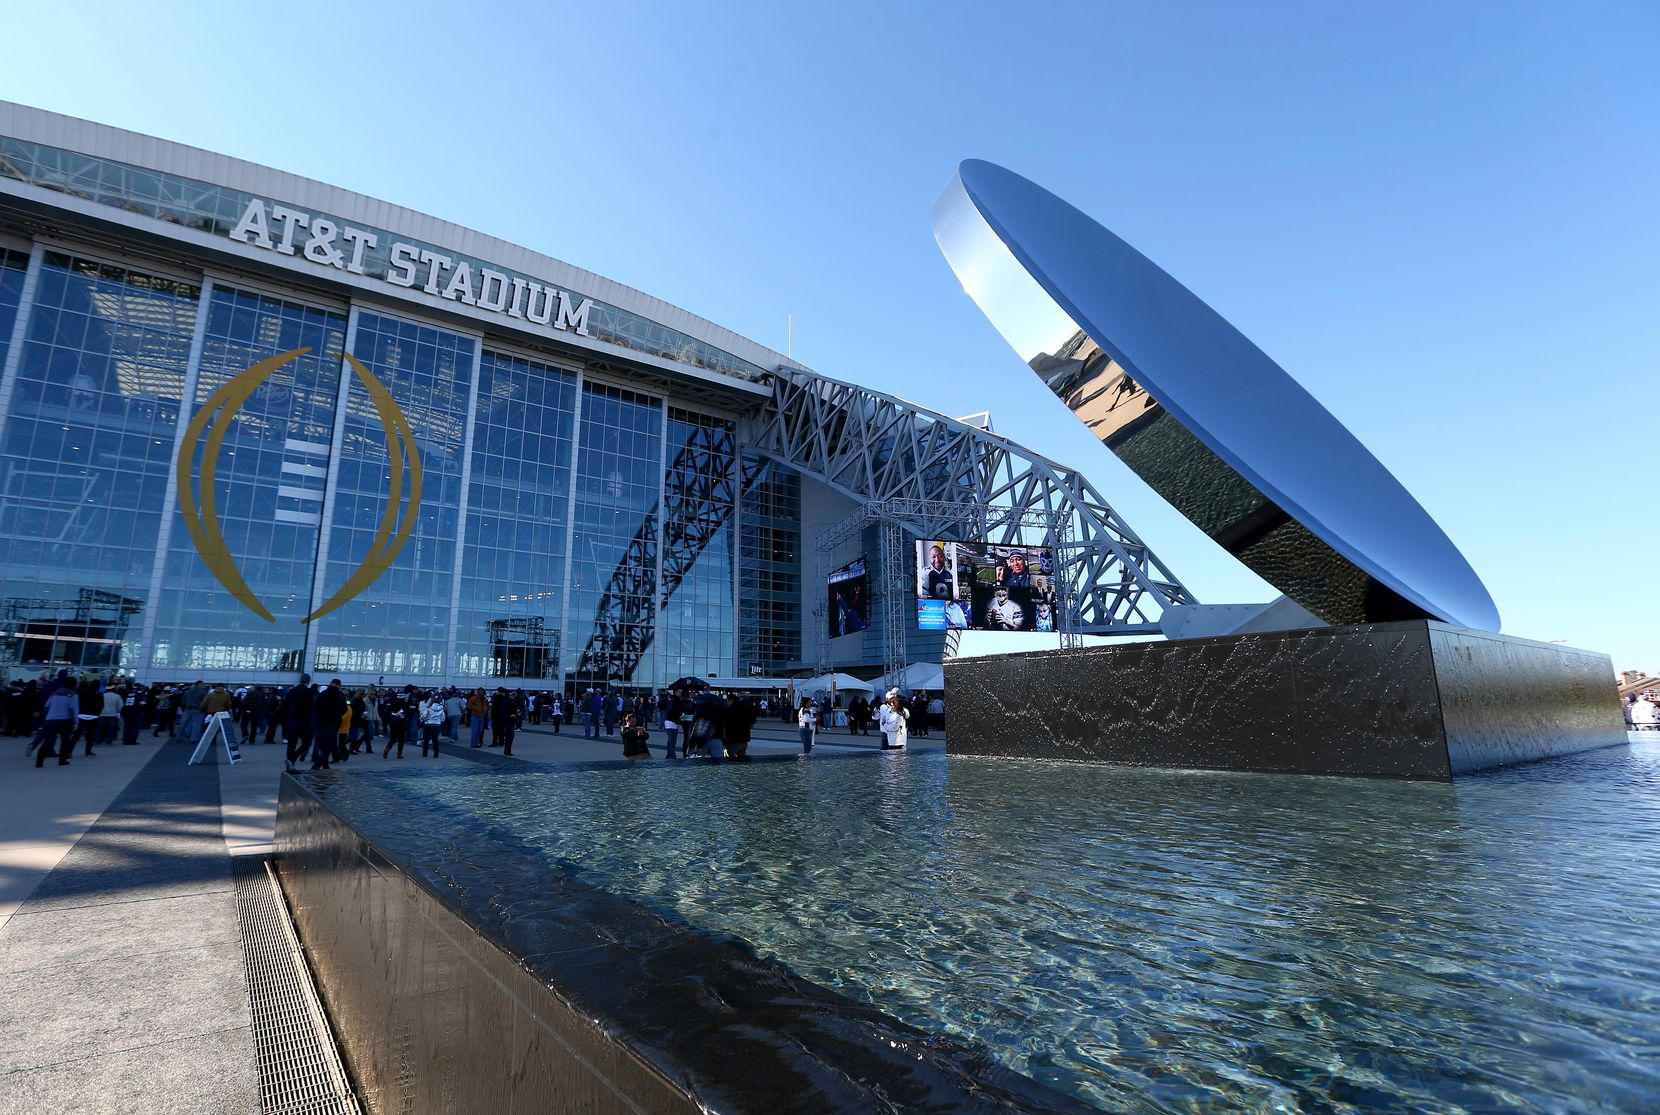 AT&T reached a deal in 2013 with the Dallas Cowboys for naming rights to its stadium in Arlington.